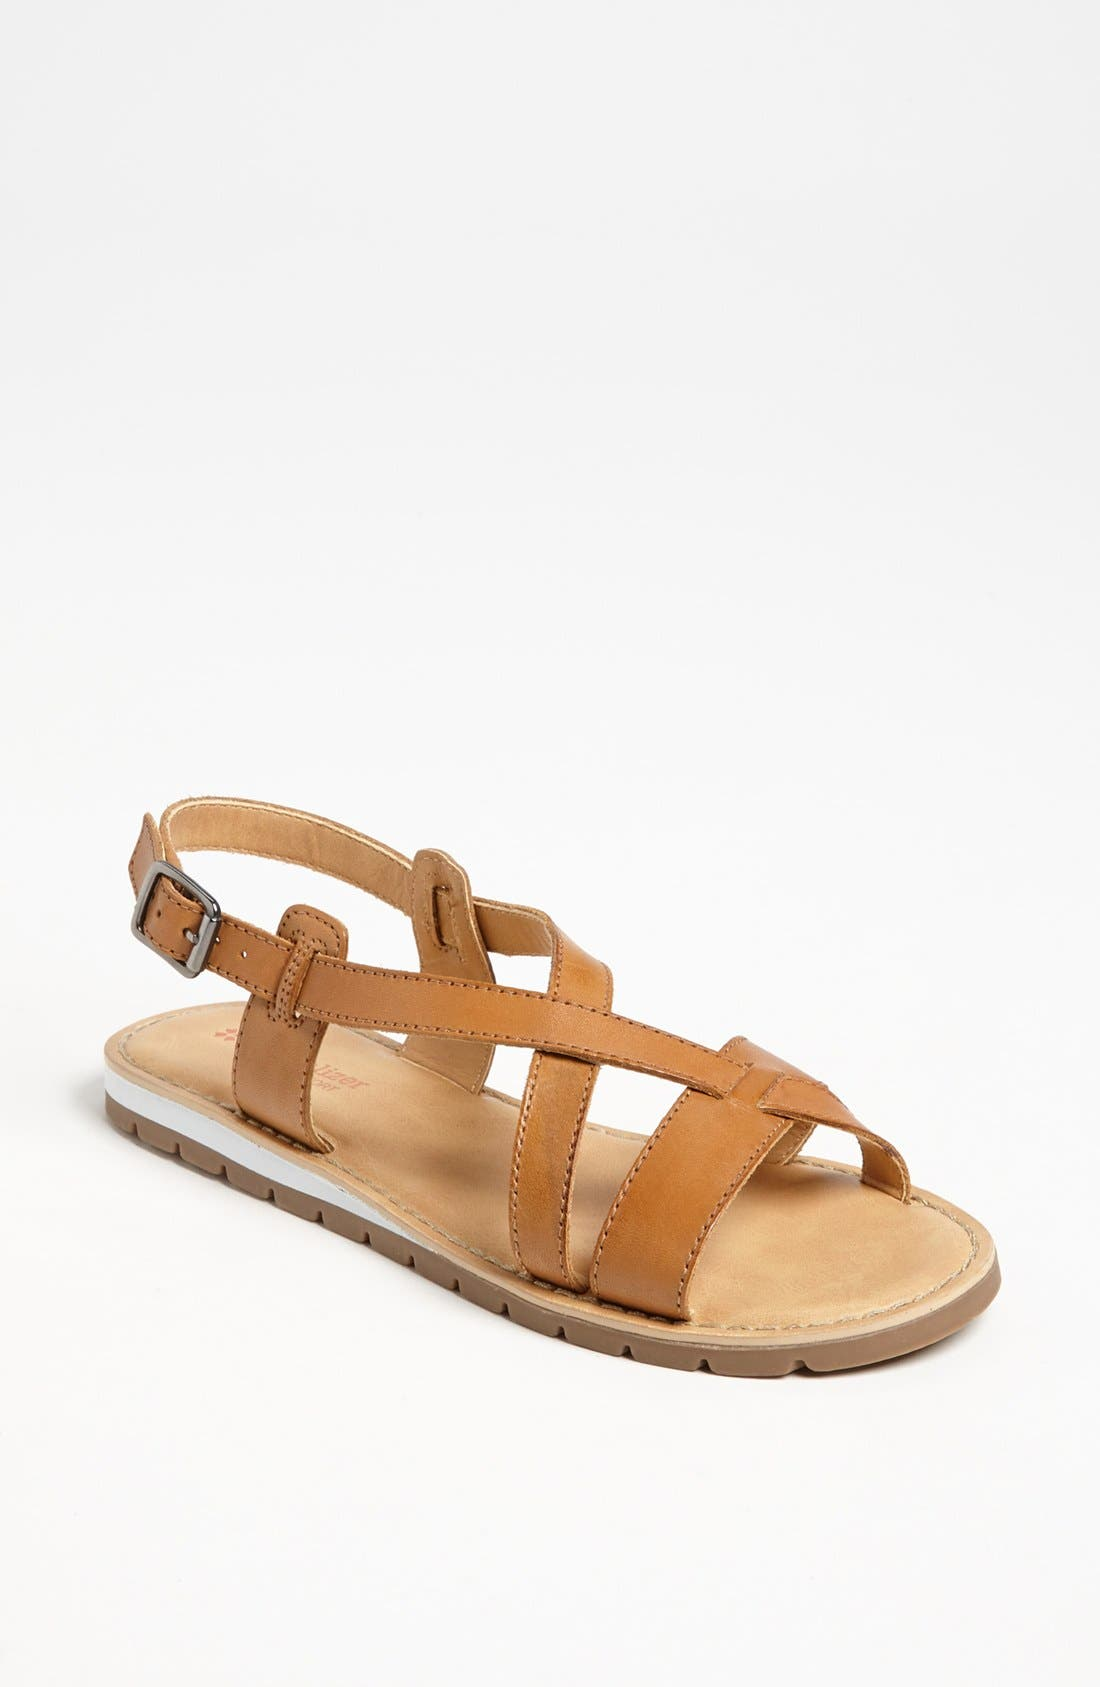 Main Image - Naturalizer 'Archer' Sandal